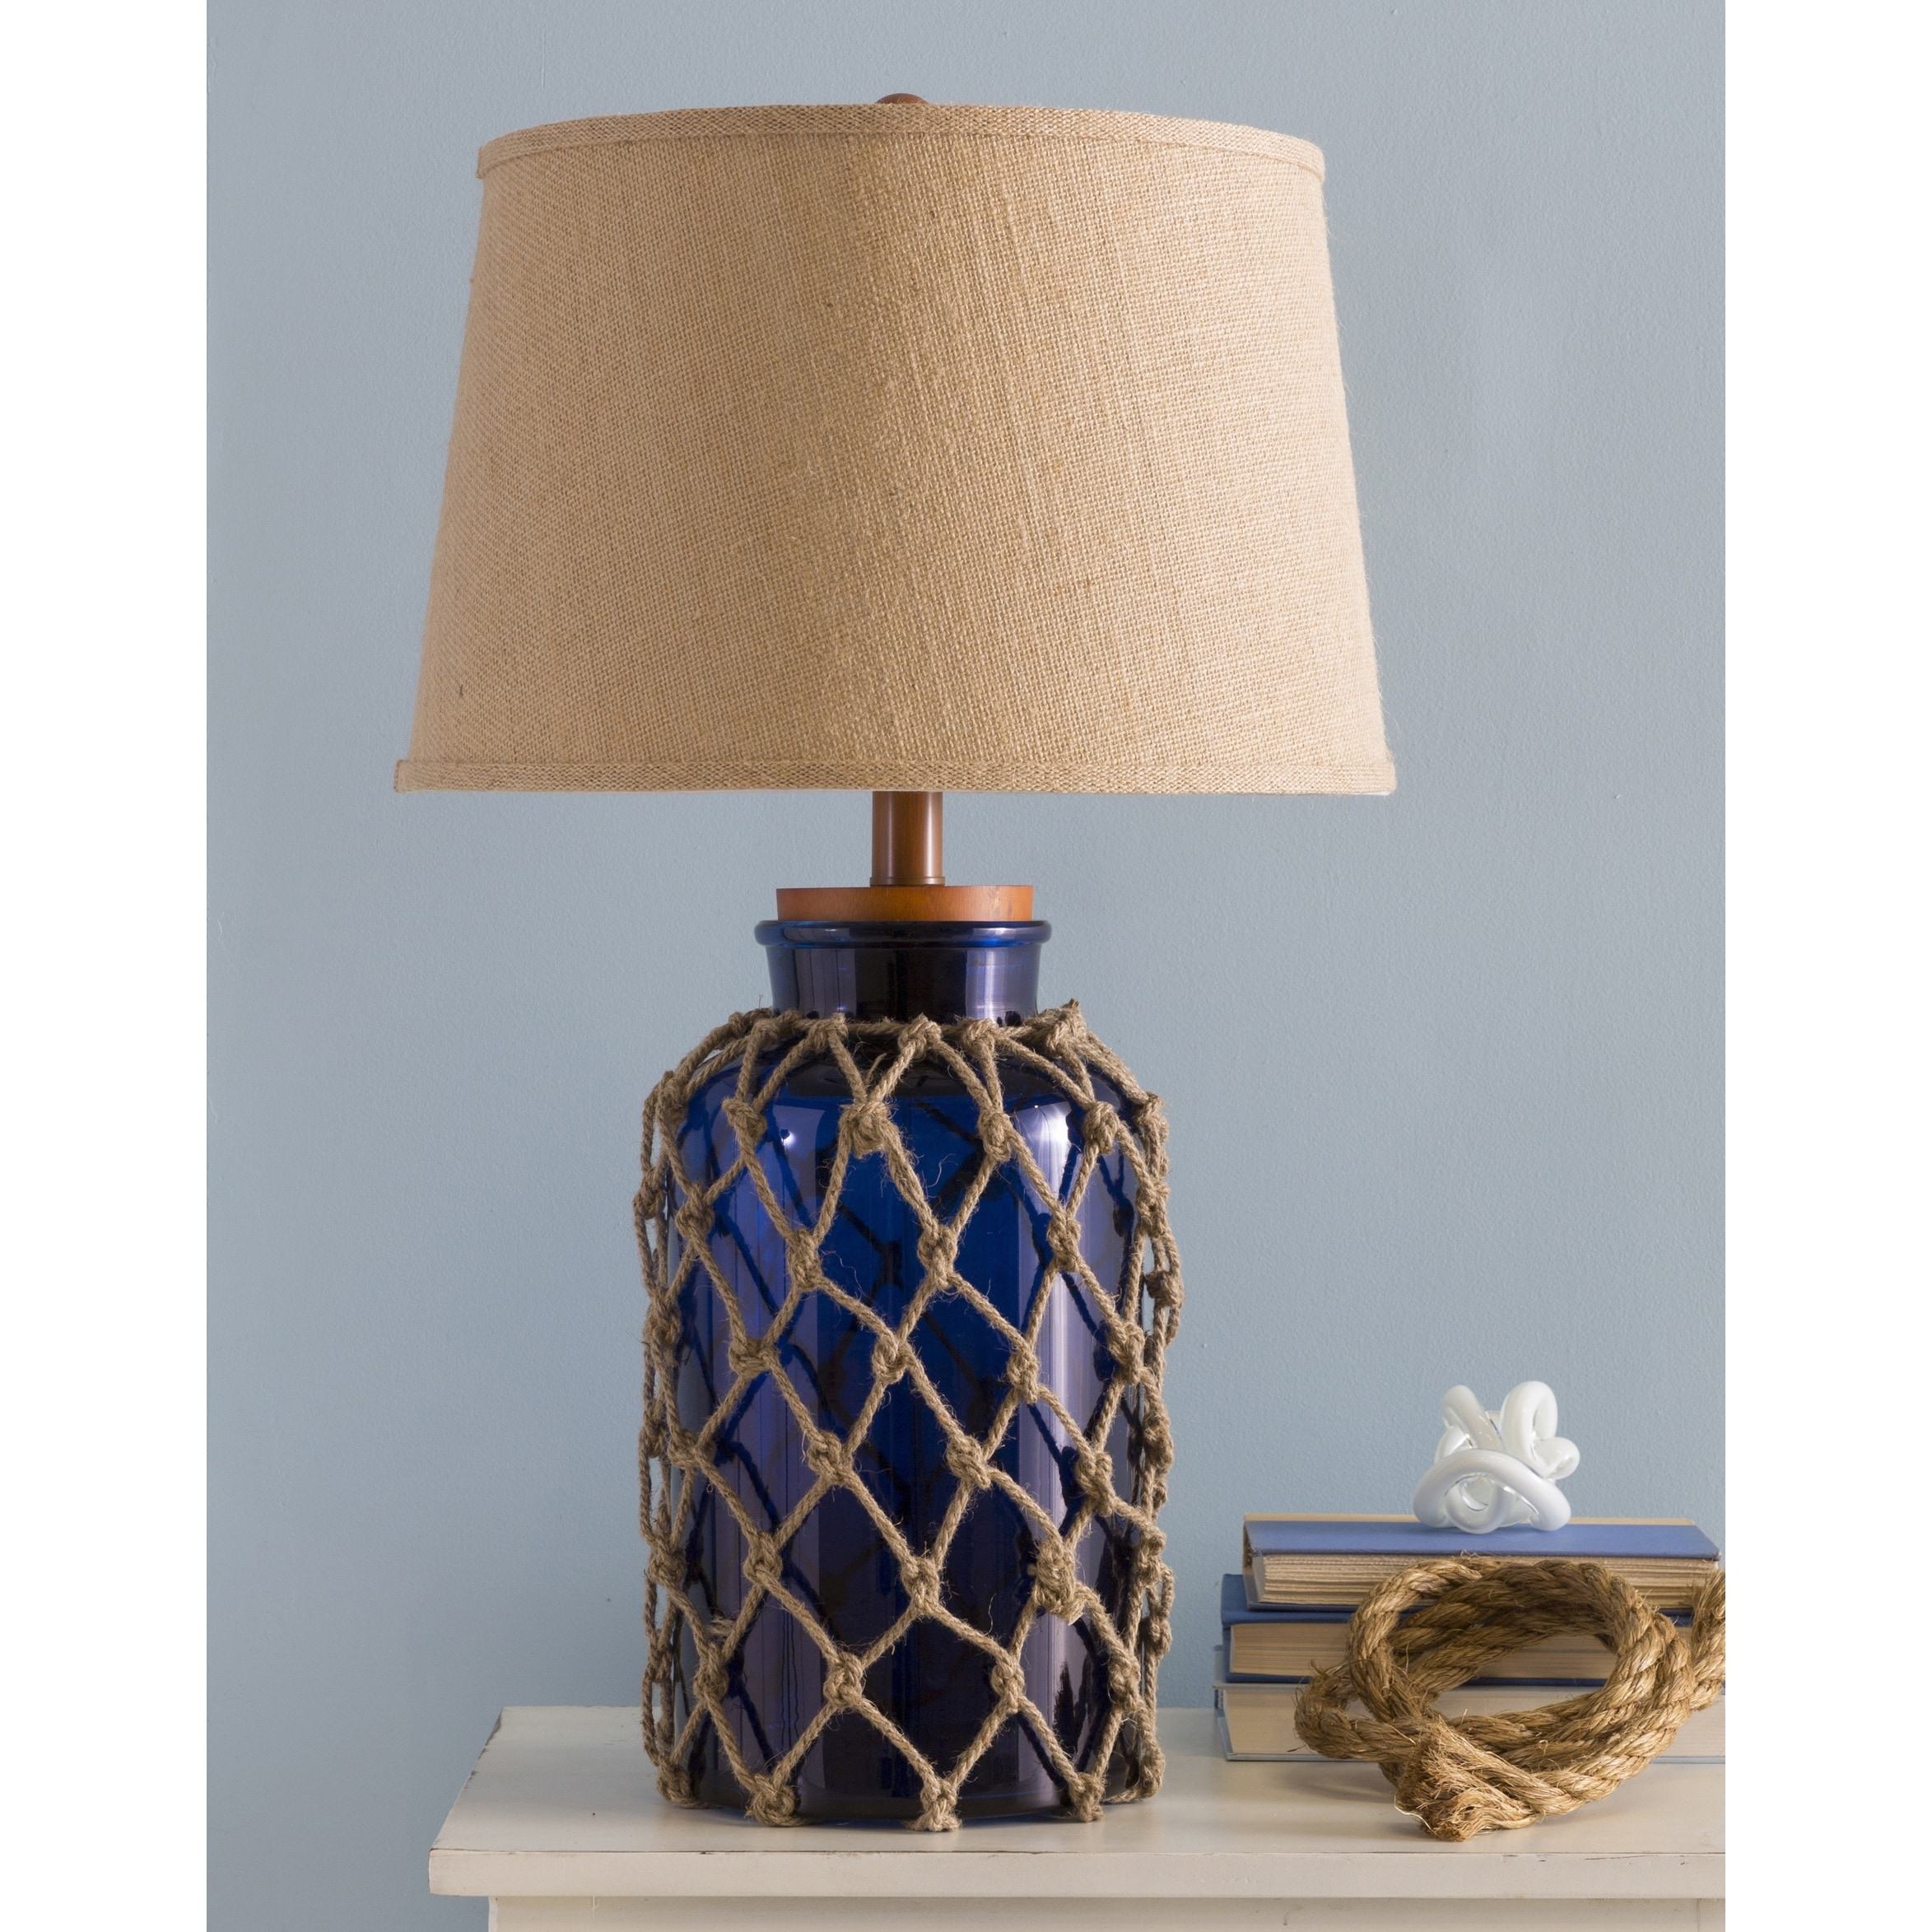 Shop Havenside Home Osprey Nautical Glass And Burlap Table Lamp Throughout Overstock Living Room Table Lamps (#13 of 15)